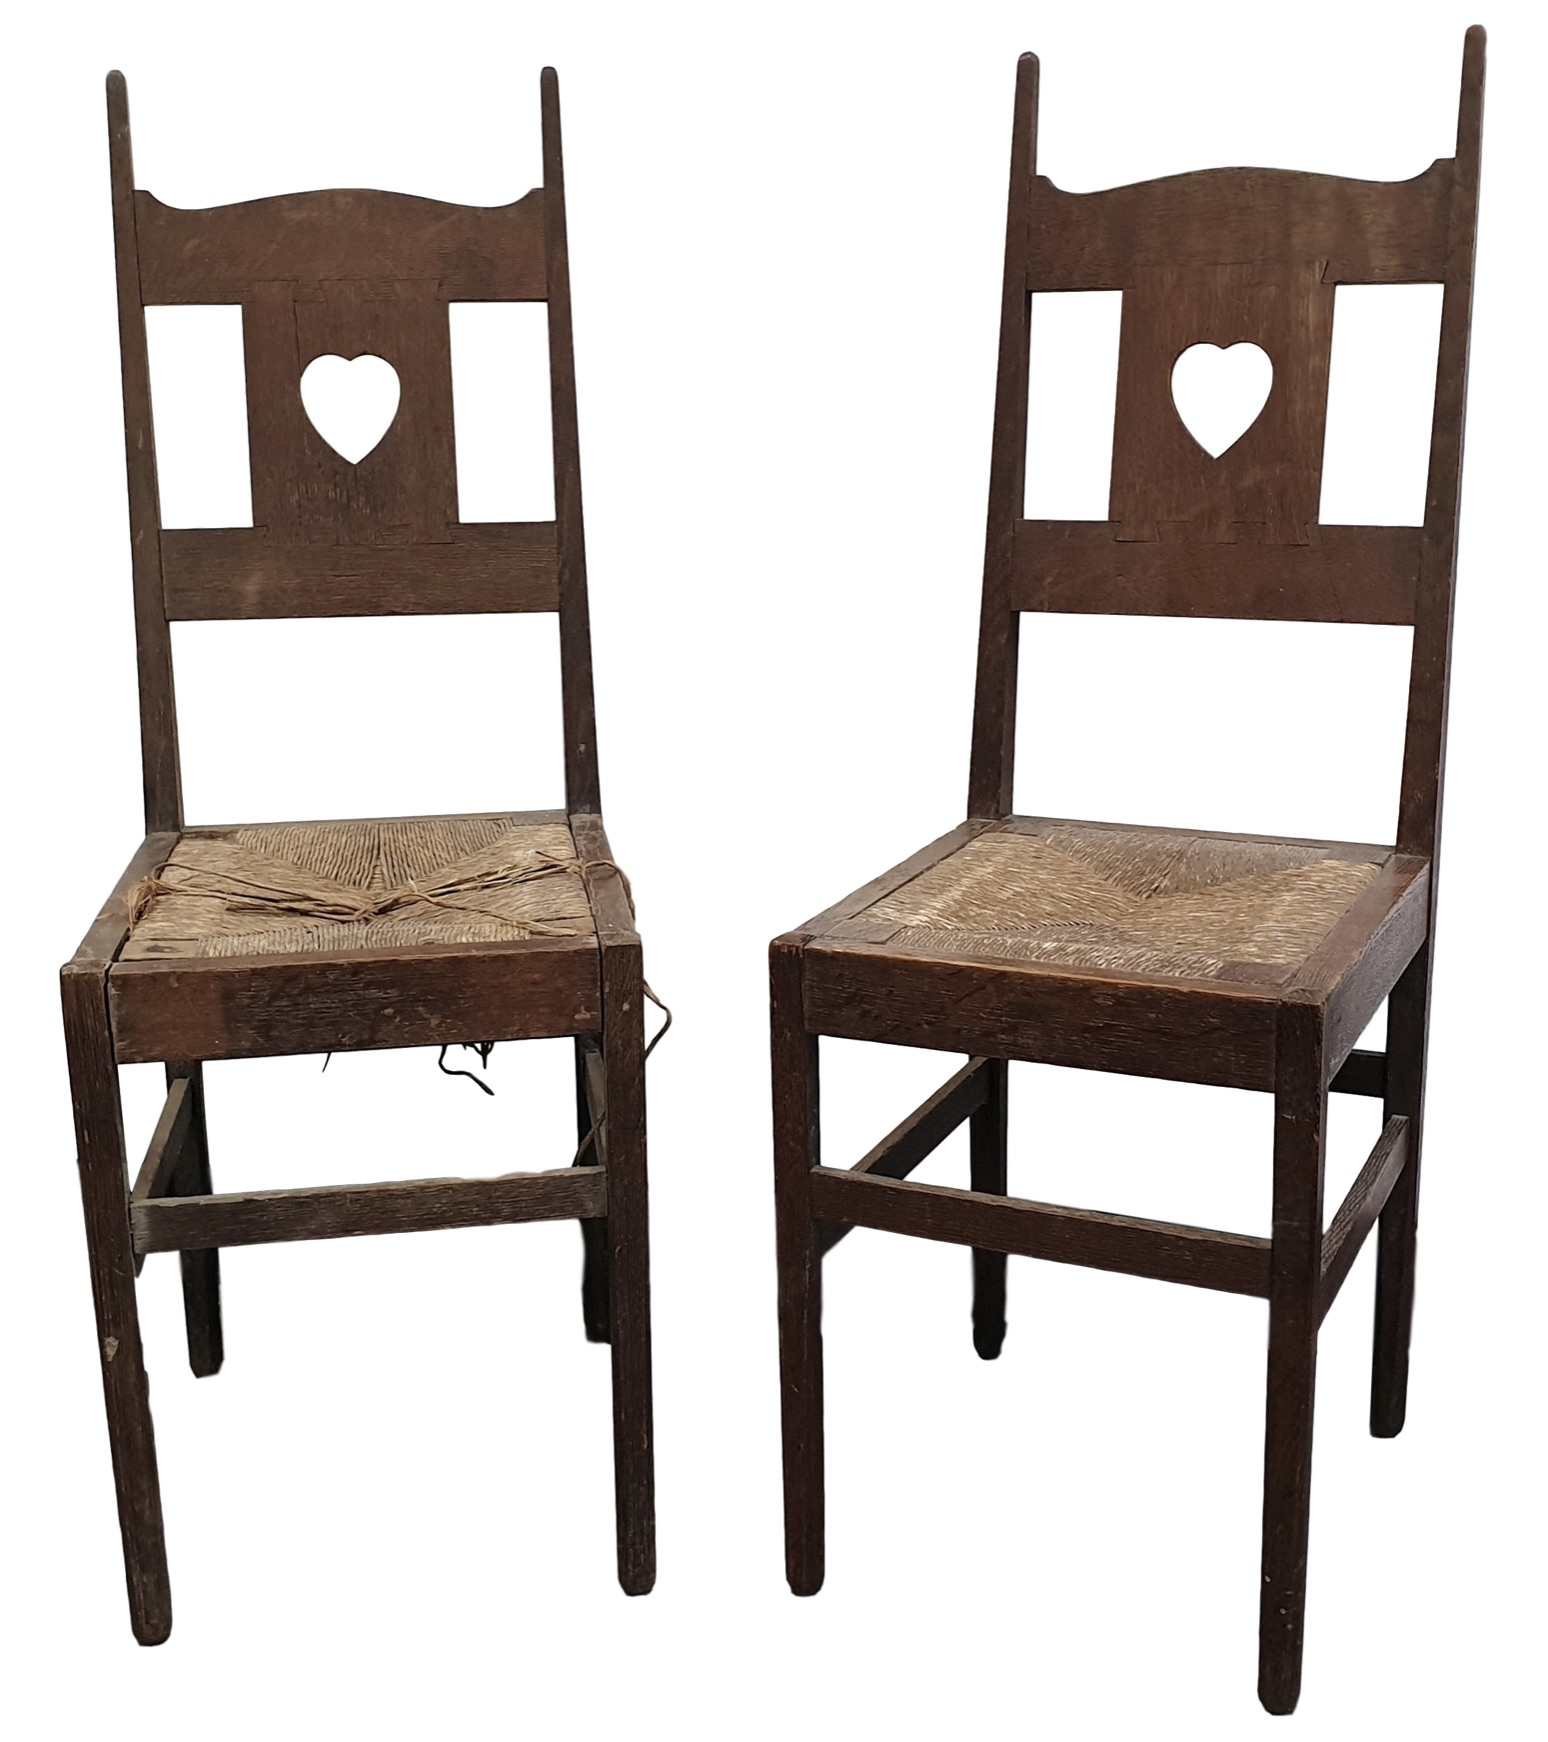 A pair of Charles Voysey chairs in the Cotswolds sale